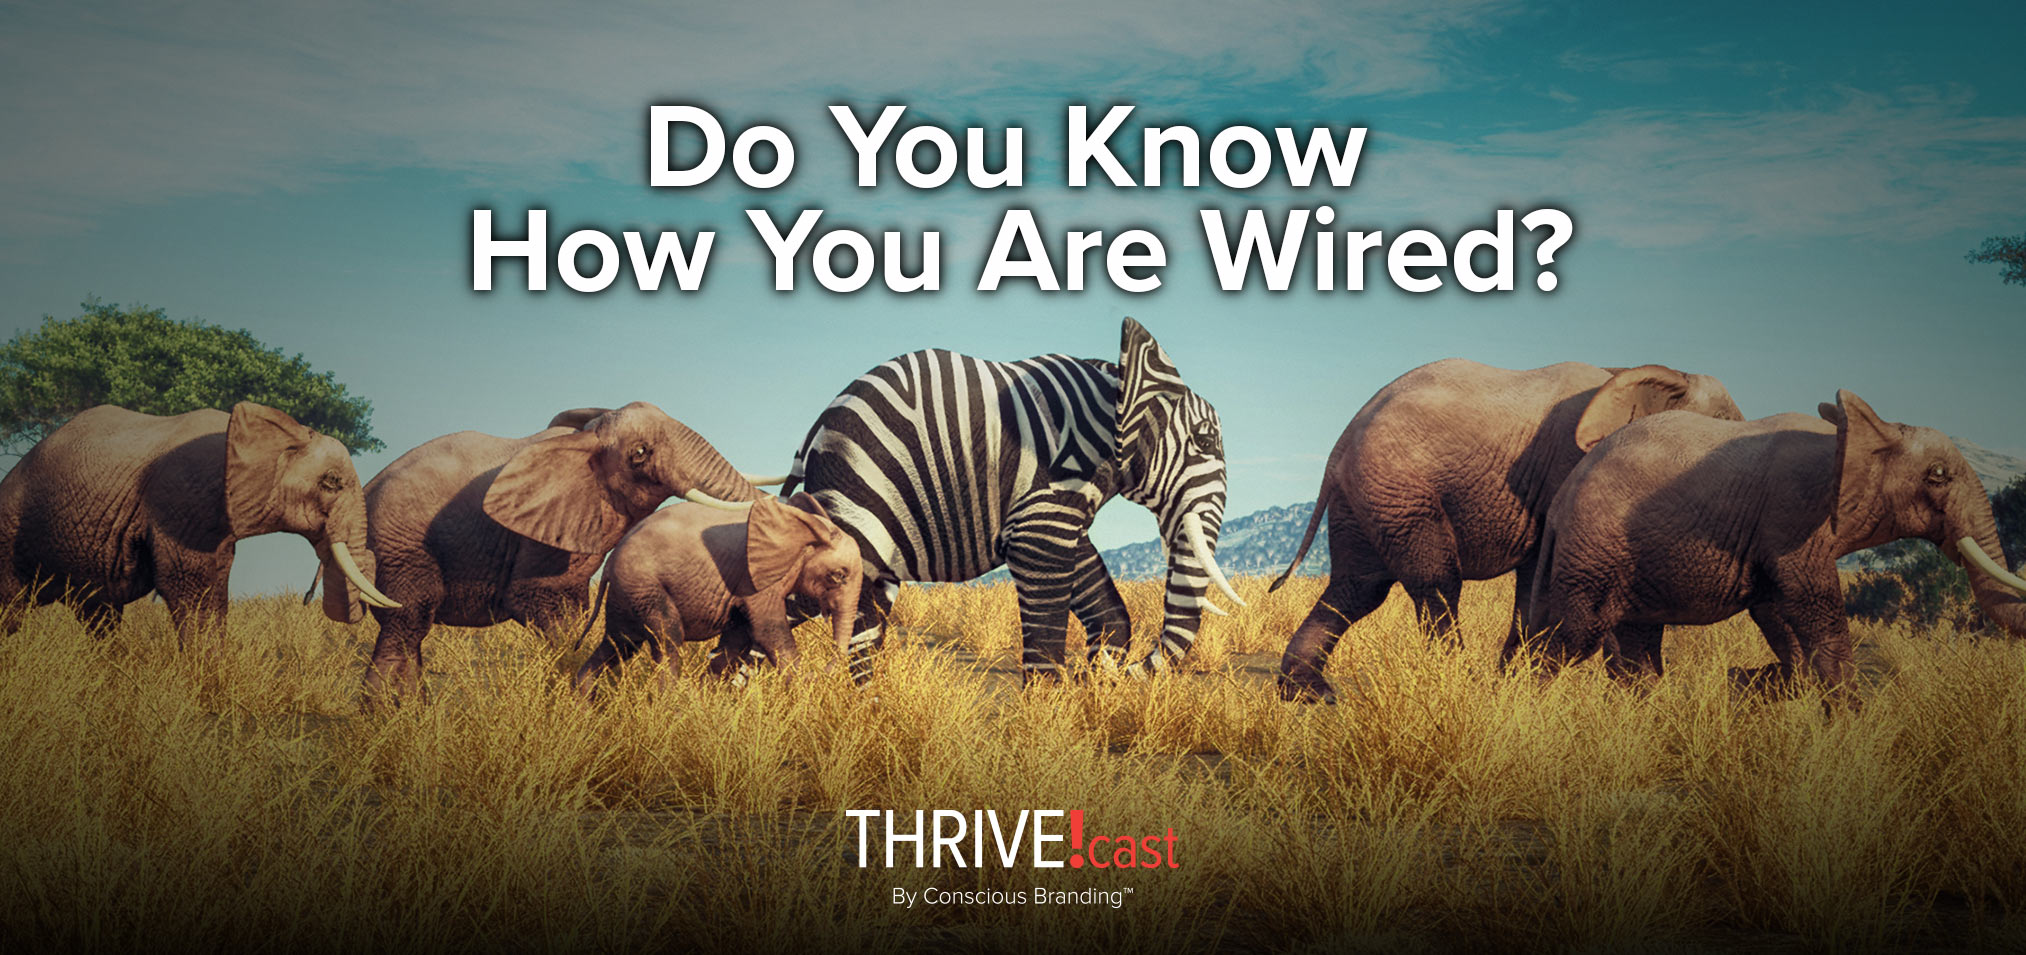 Thrivecast - Do You Know How You Are Wired